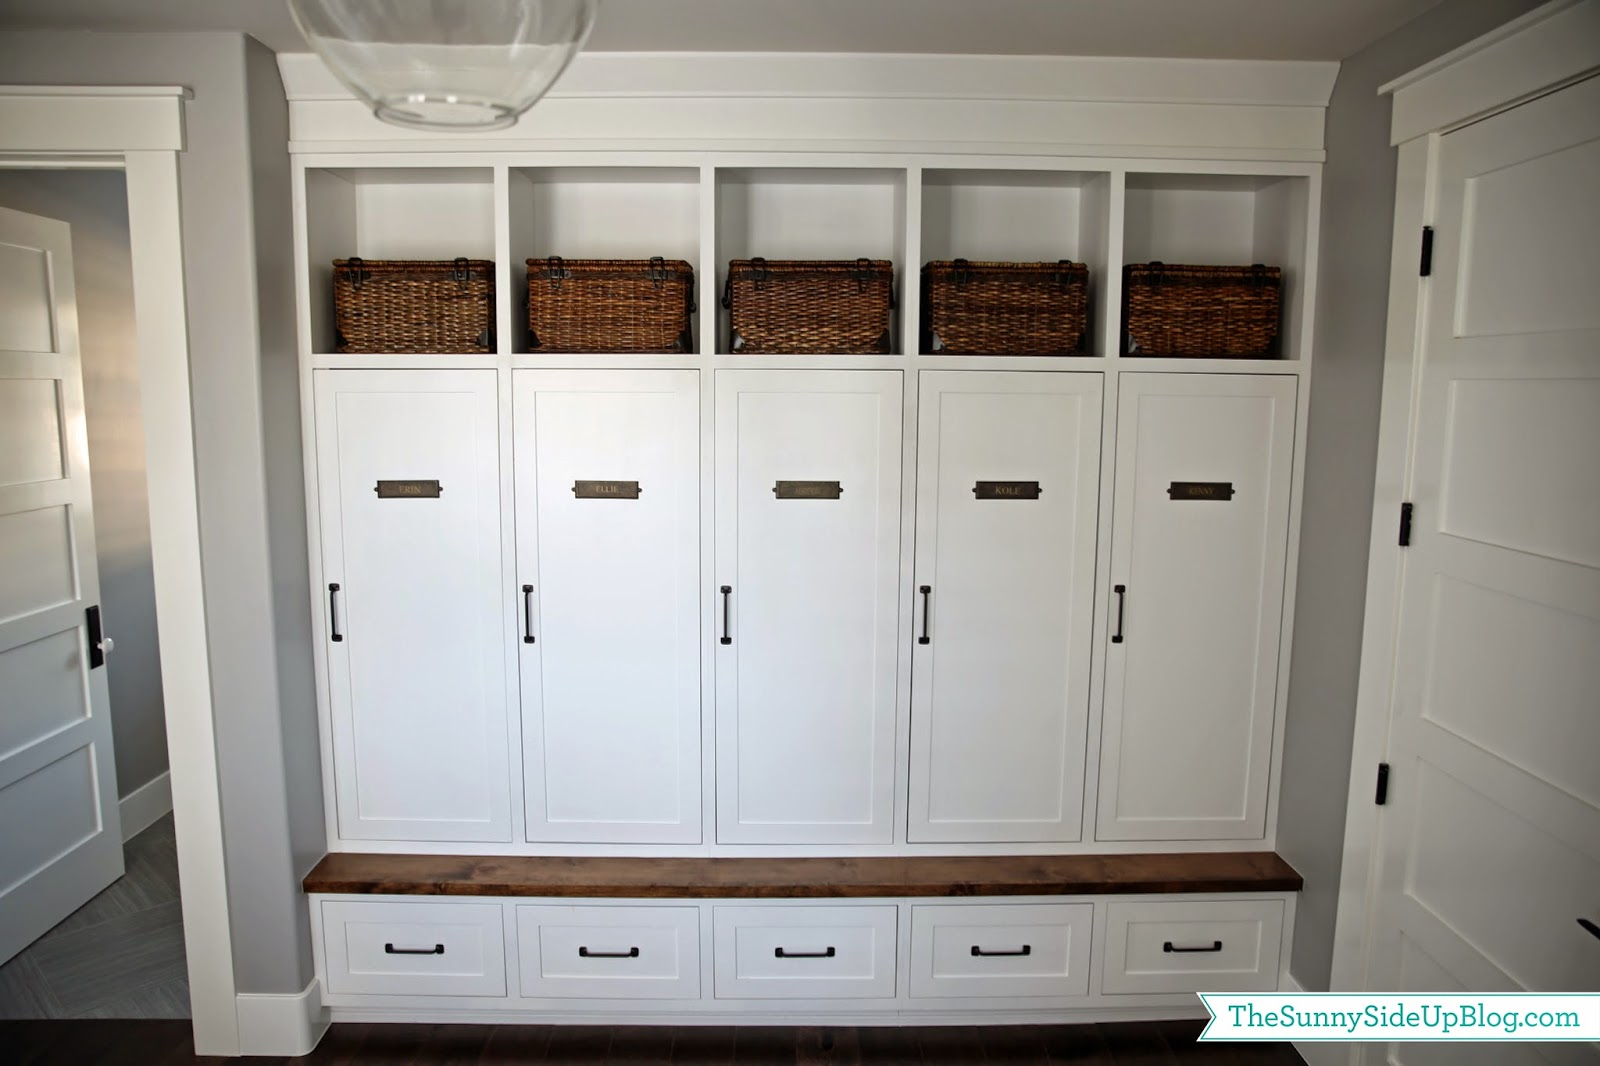 My new organized mudroom the sunny side up blog for Mudroom locker design plans